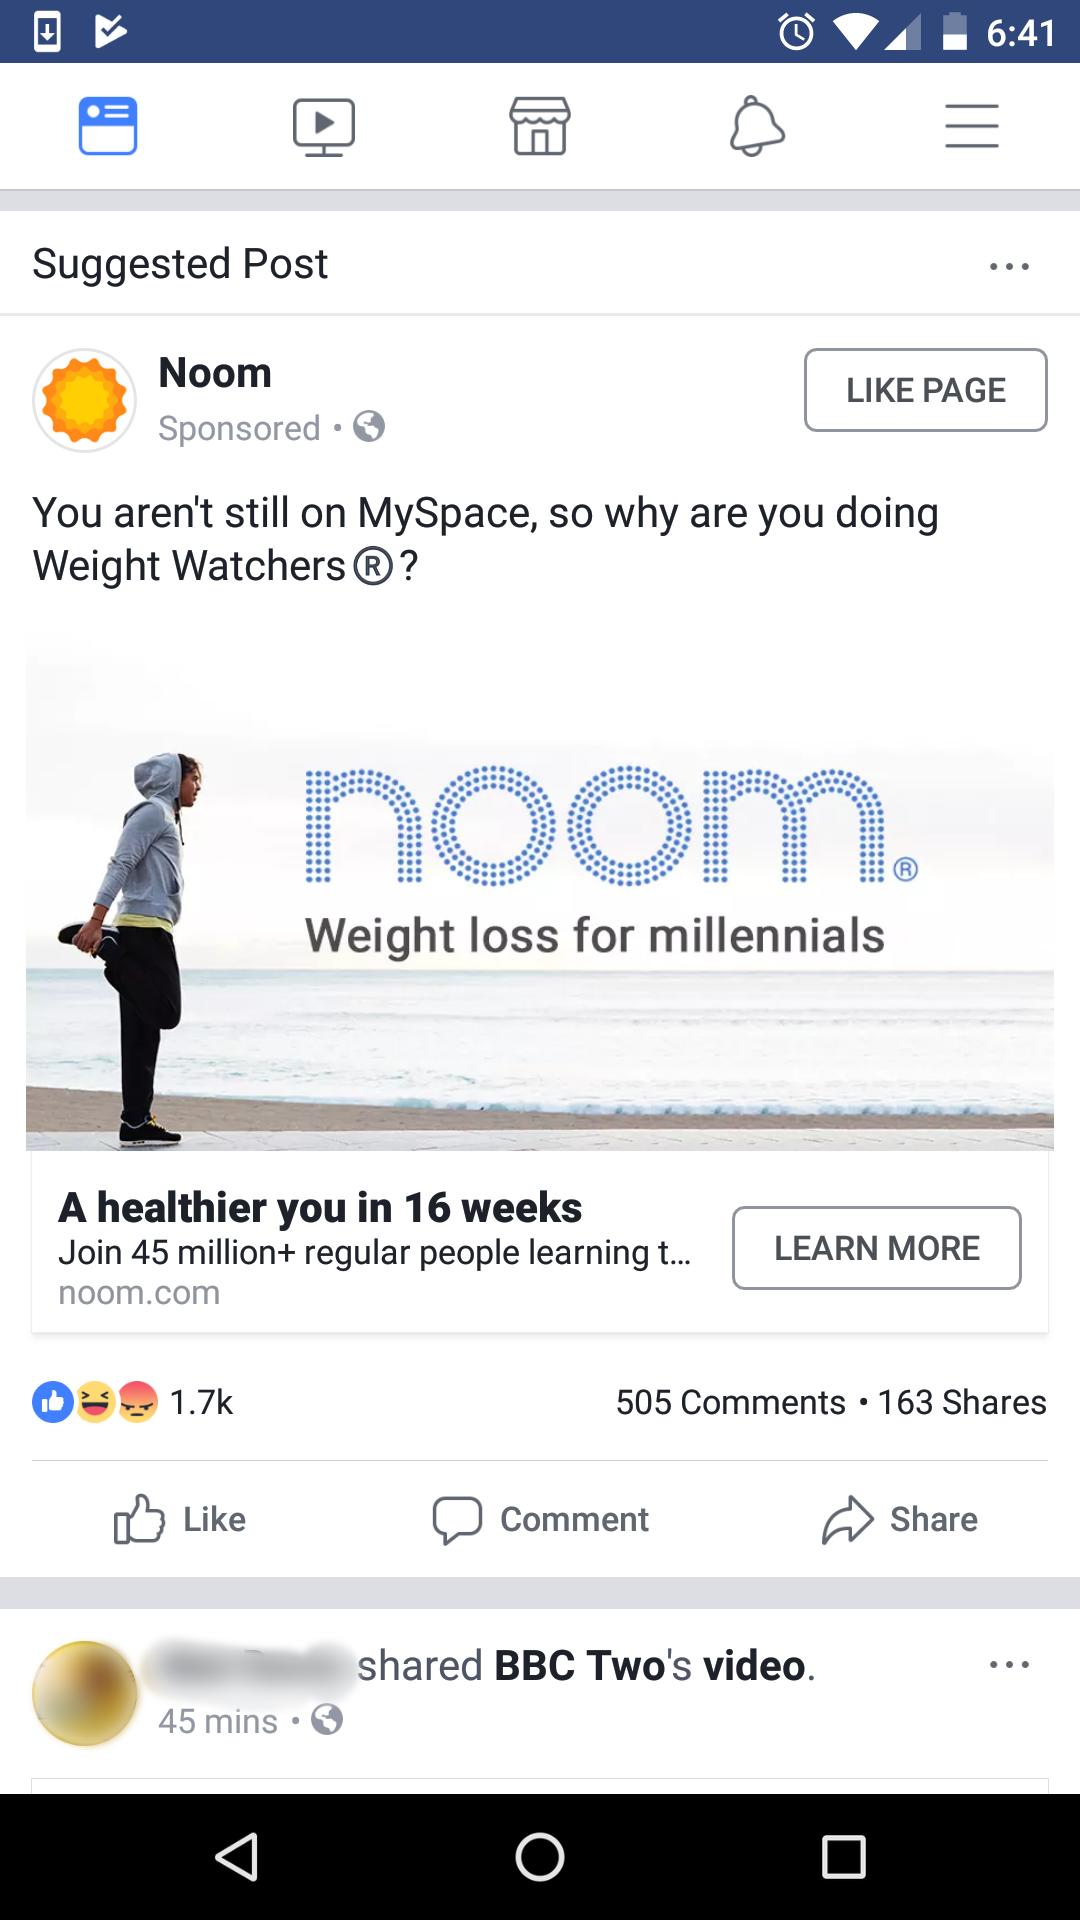 Comparative Advertising on Facebook: Noom Takes on Weight Watchers